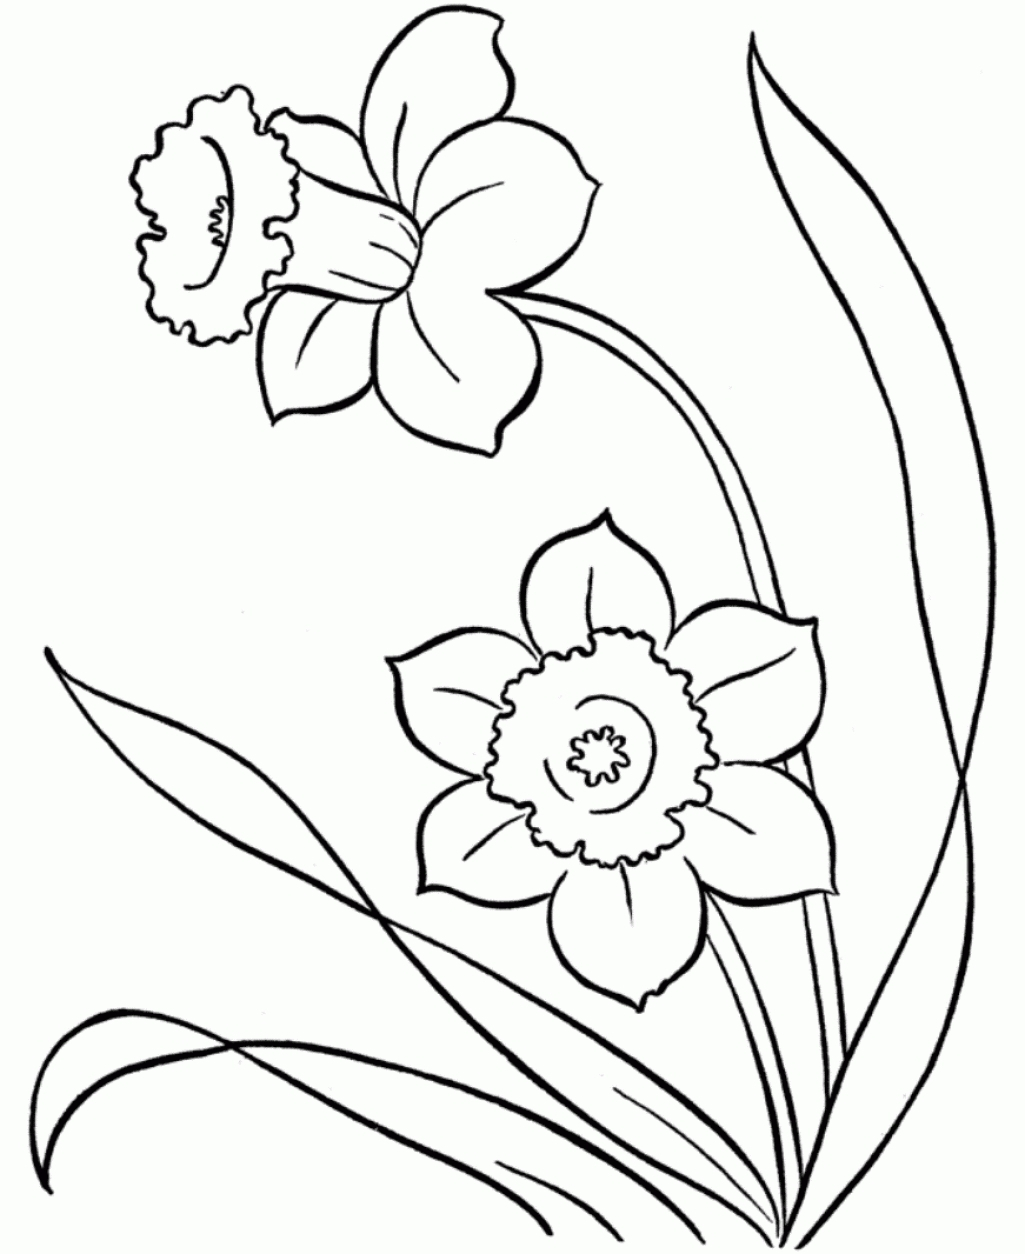 Best Line Drawings Snowdrops Google Search Printable Of Daffodil Coloring Pages Gallery